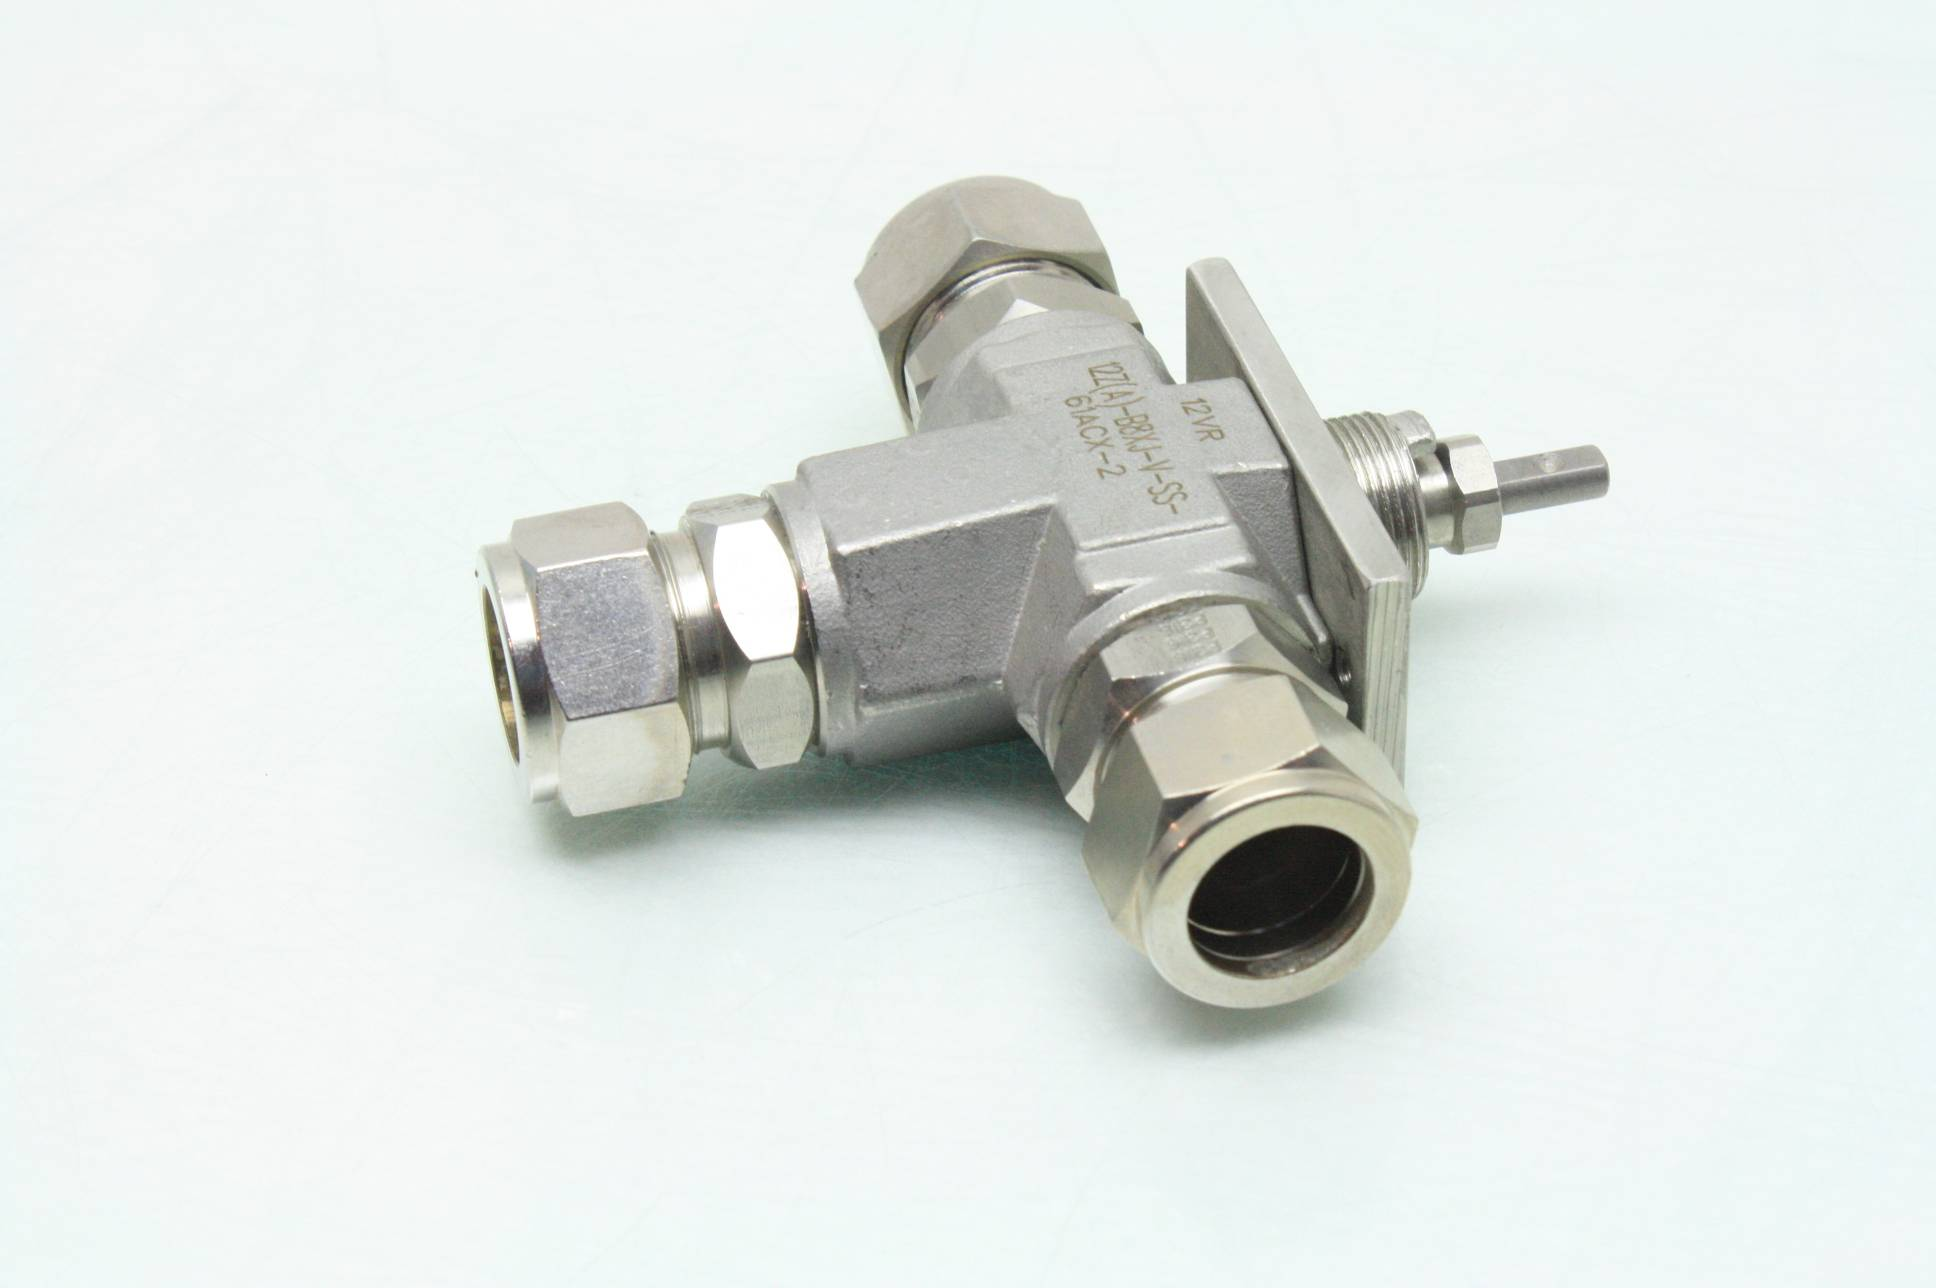 4 way ball valve the basic ear diagram label parker 12z a b8xj v ss 61acx 2 stainless steel 3